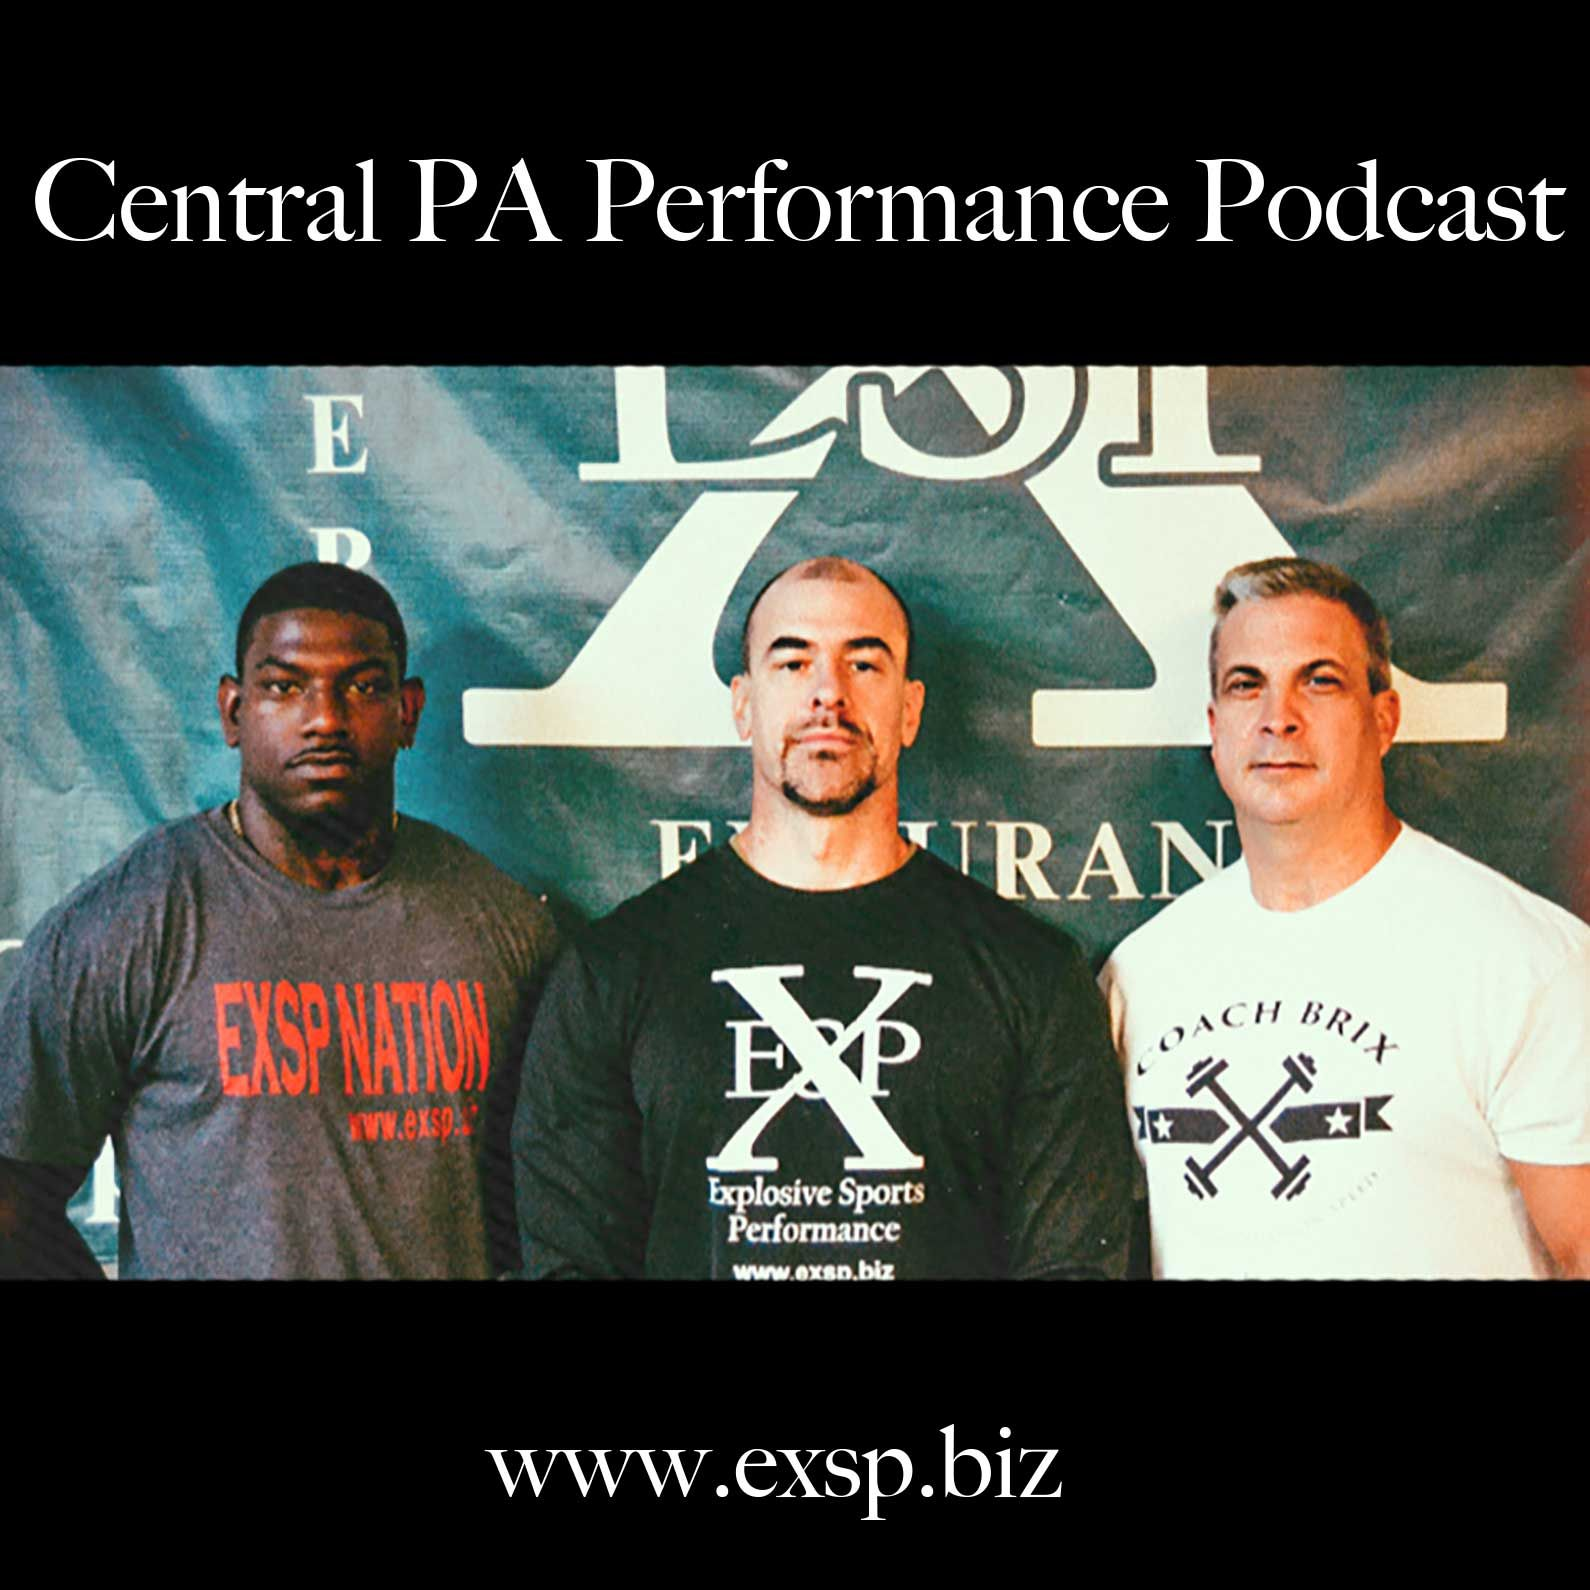 Central PA Performance Podcast